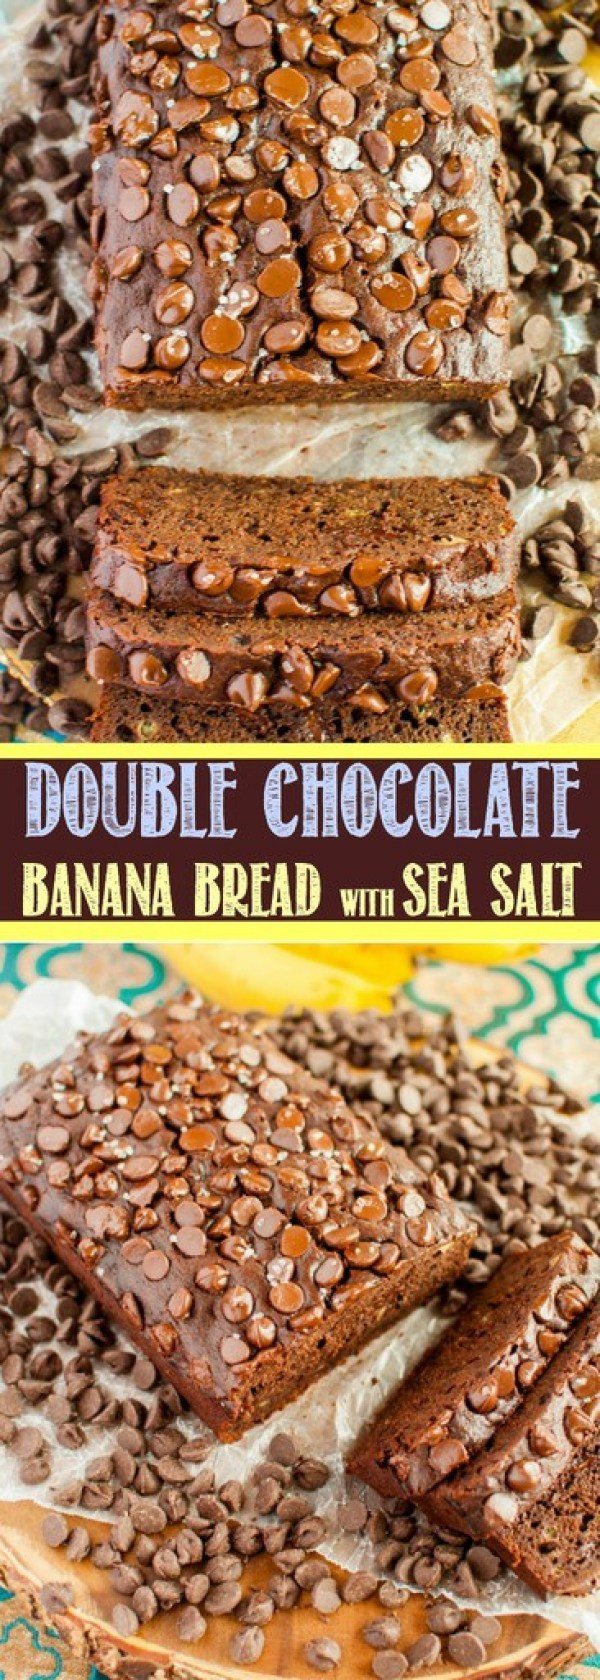 This Chocolate Banana Bread with Sea Salt is so moist and delicious, you'll want it for breakfast, snacks, and dessert! All who try it will want the recipe!